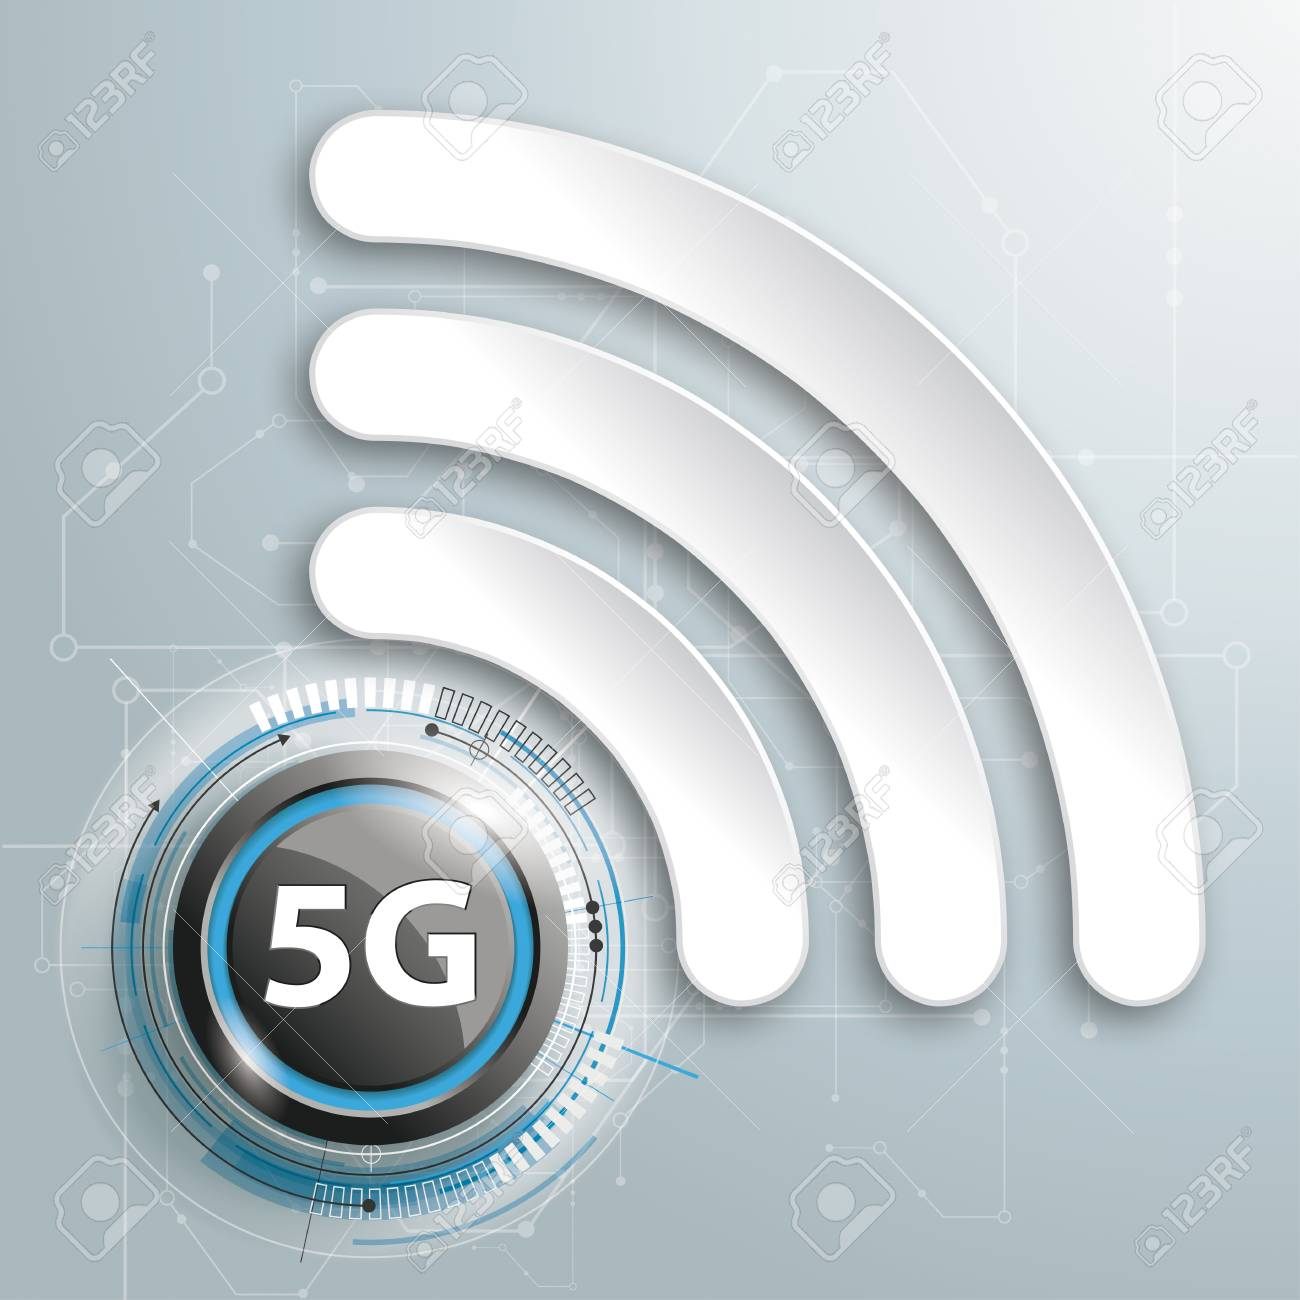 Infographic design with WiFi-Symbol and text 5G on the gray background. Eps 10 vector file. - 115567065